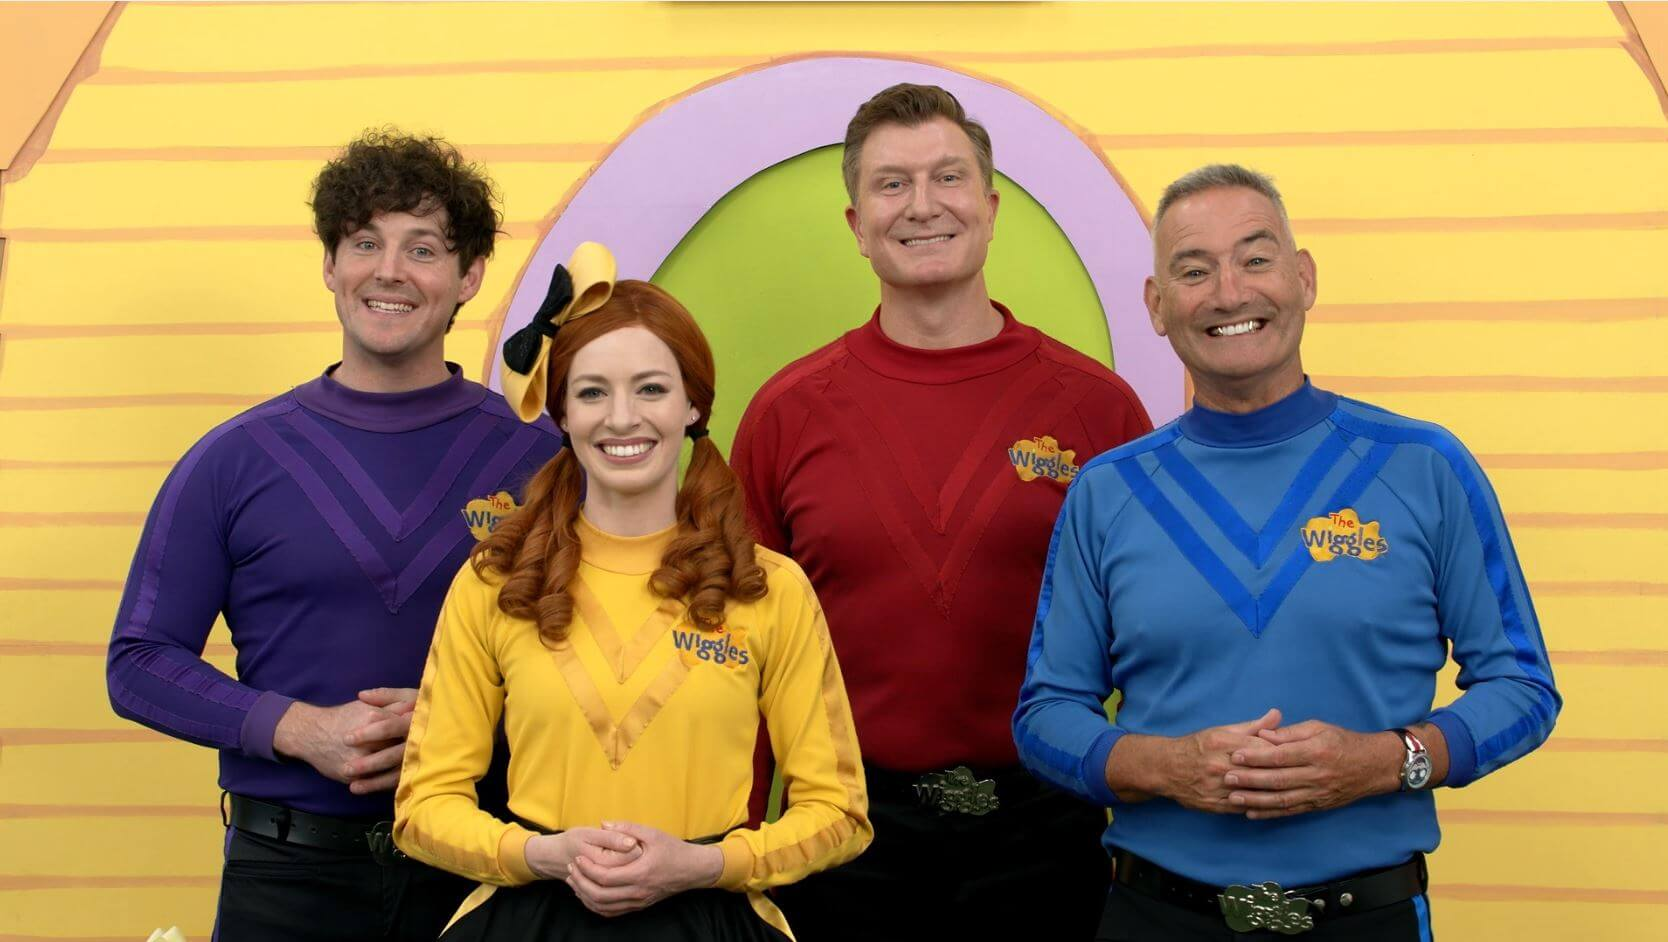 The Wiggles Partner with St John WA